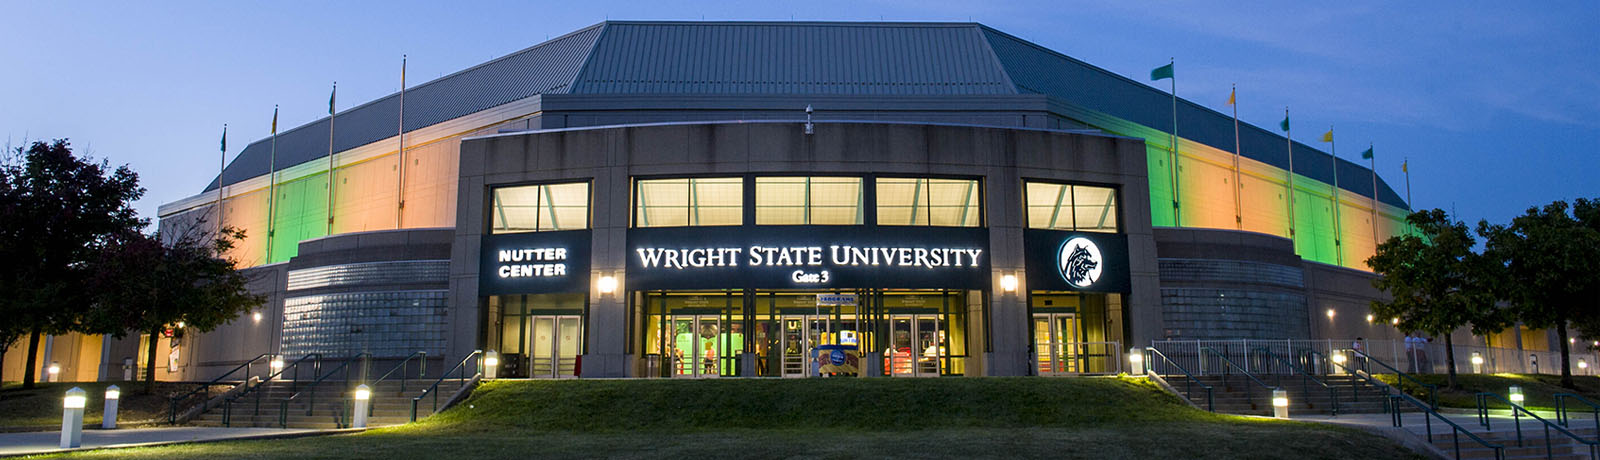 Wright State University Picture